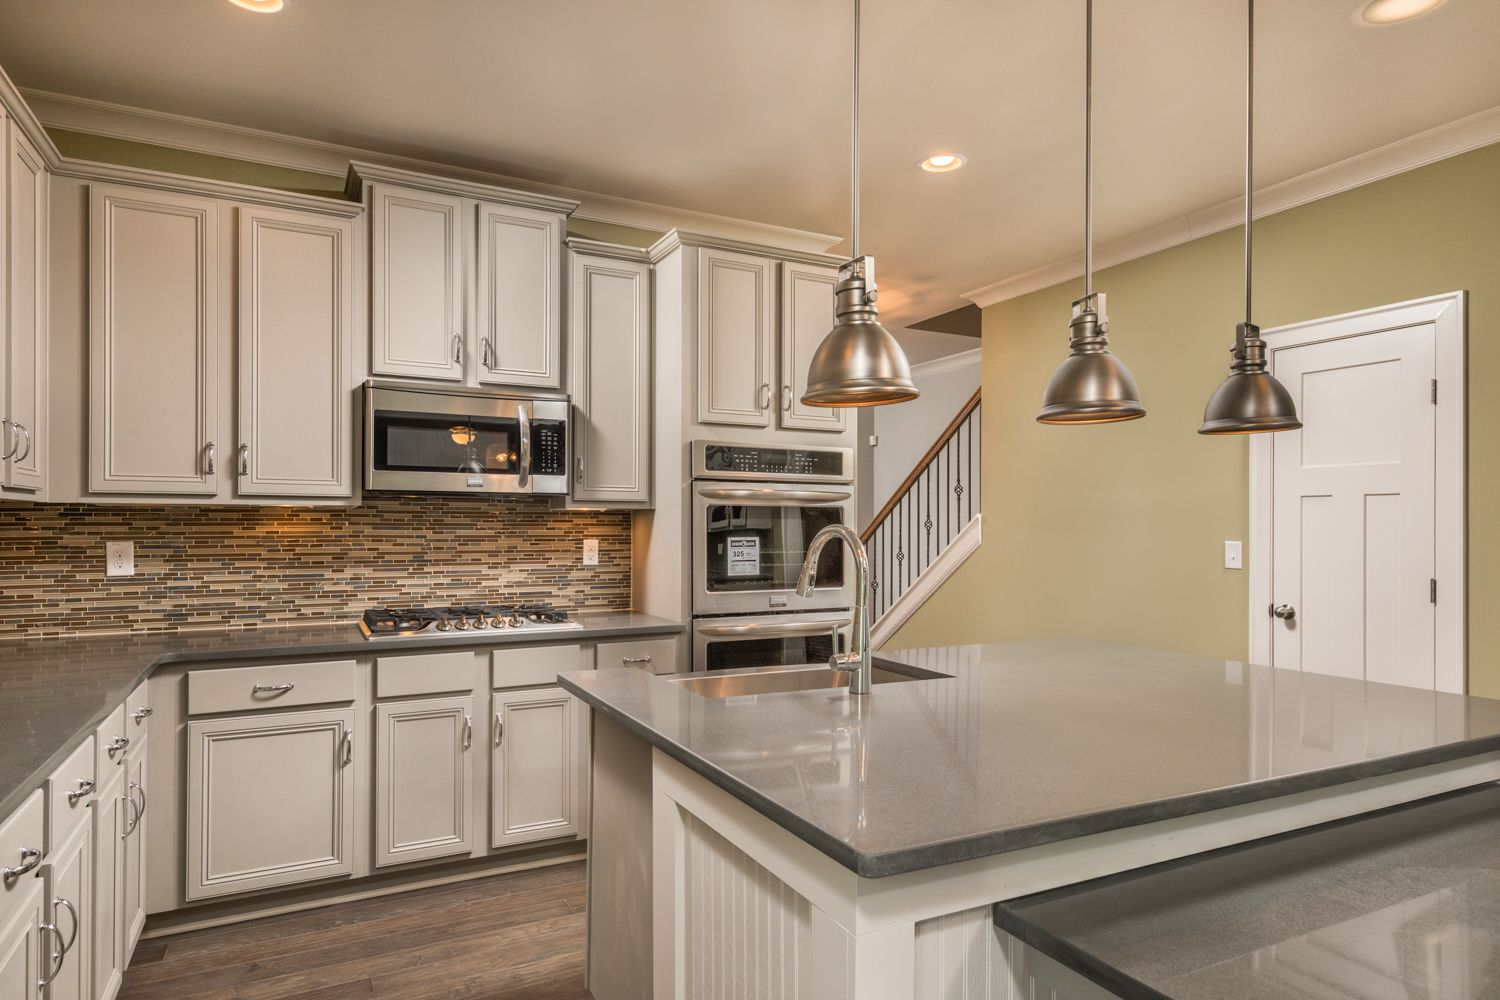 This Chattanooga Kitchen Is Very Functional But Does Not ...